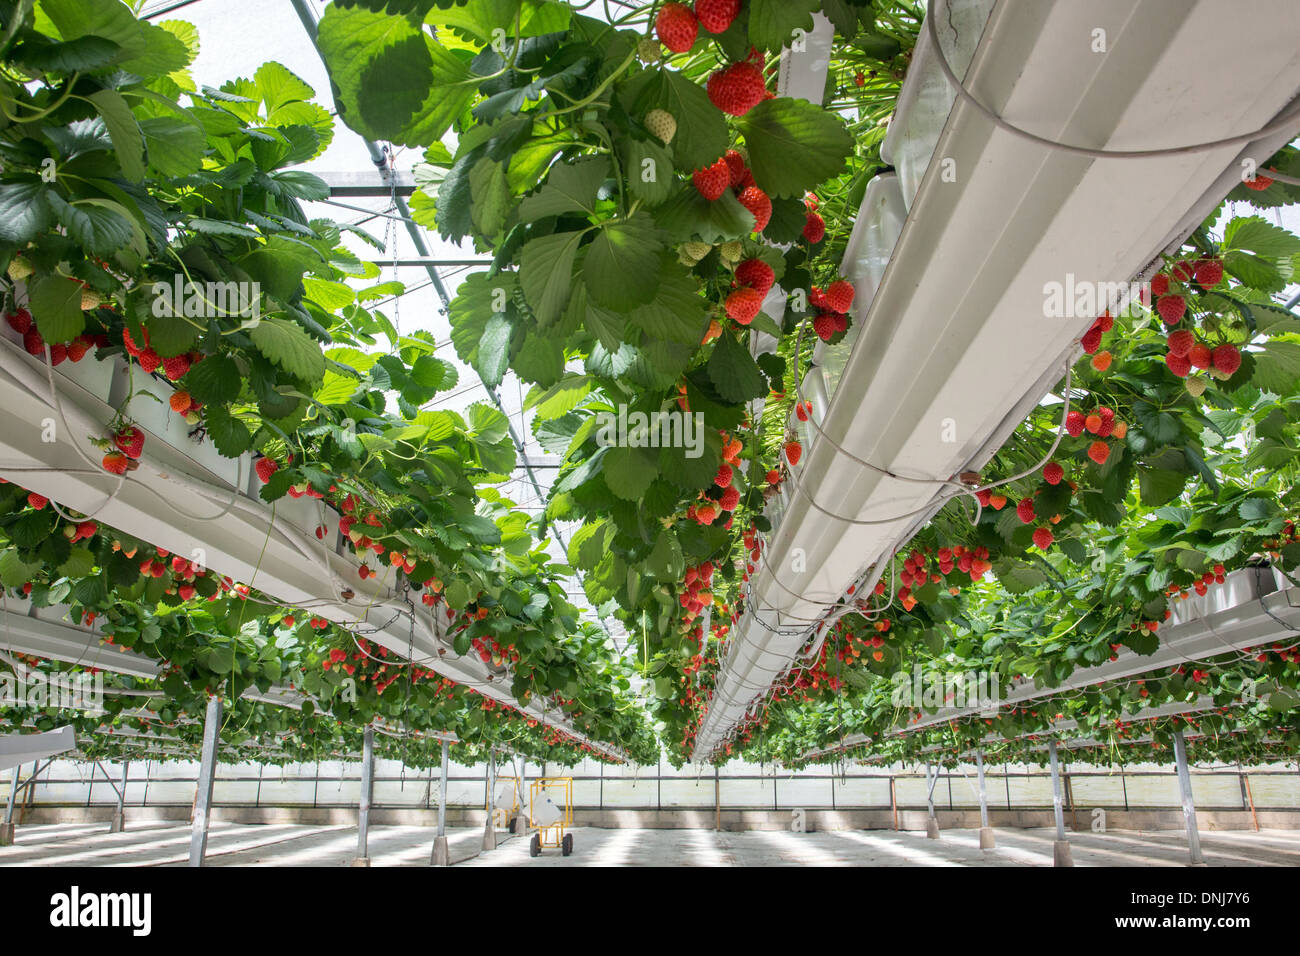 greenhouse growing of strawberries of the mara des bois variety at stock photo royalty free. Black Bedroom Furniture Sets. Home Design Ideas